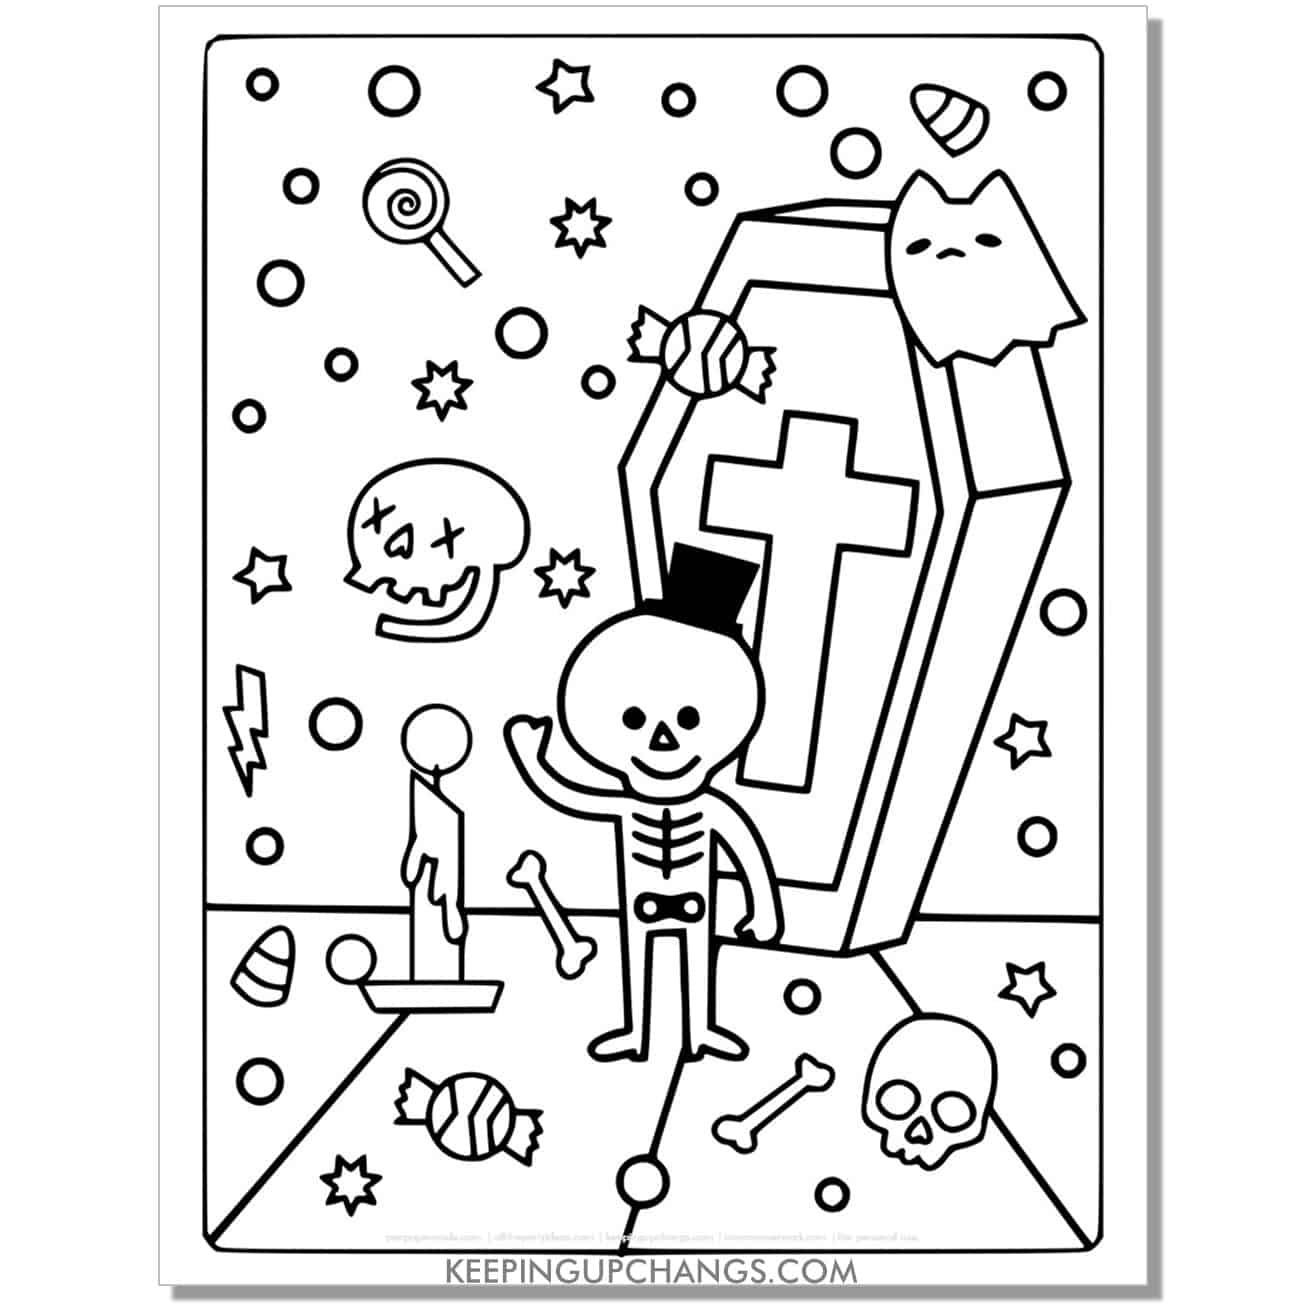 full size halloween ghost cat, coffin, skeleton, candle coloring page.